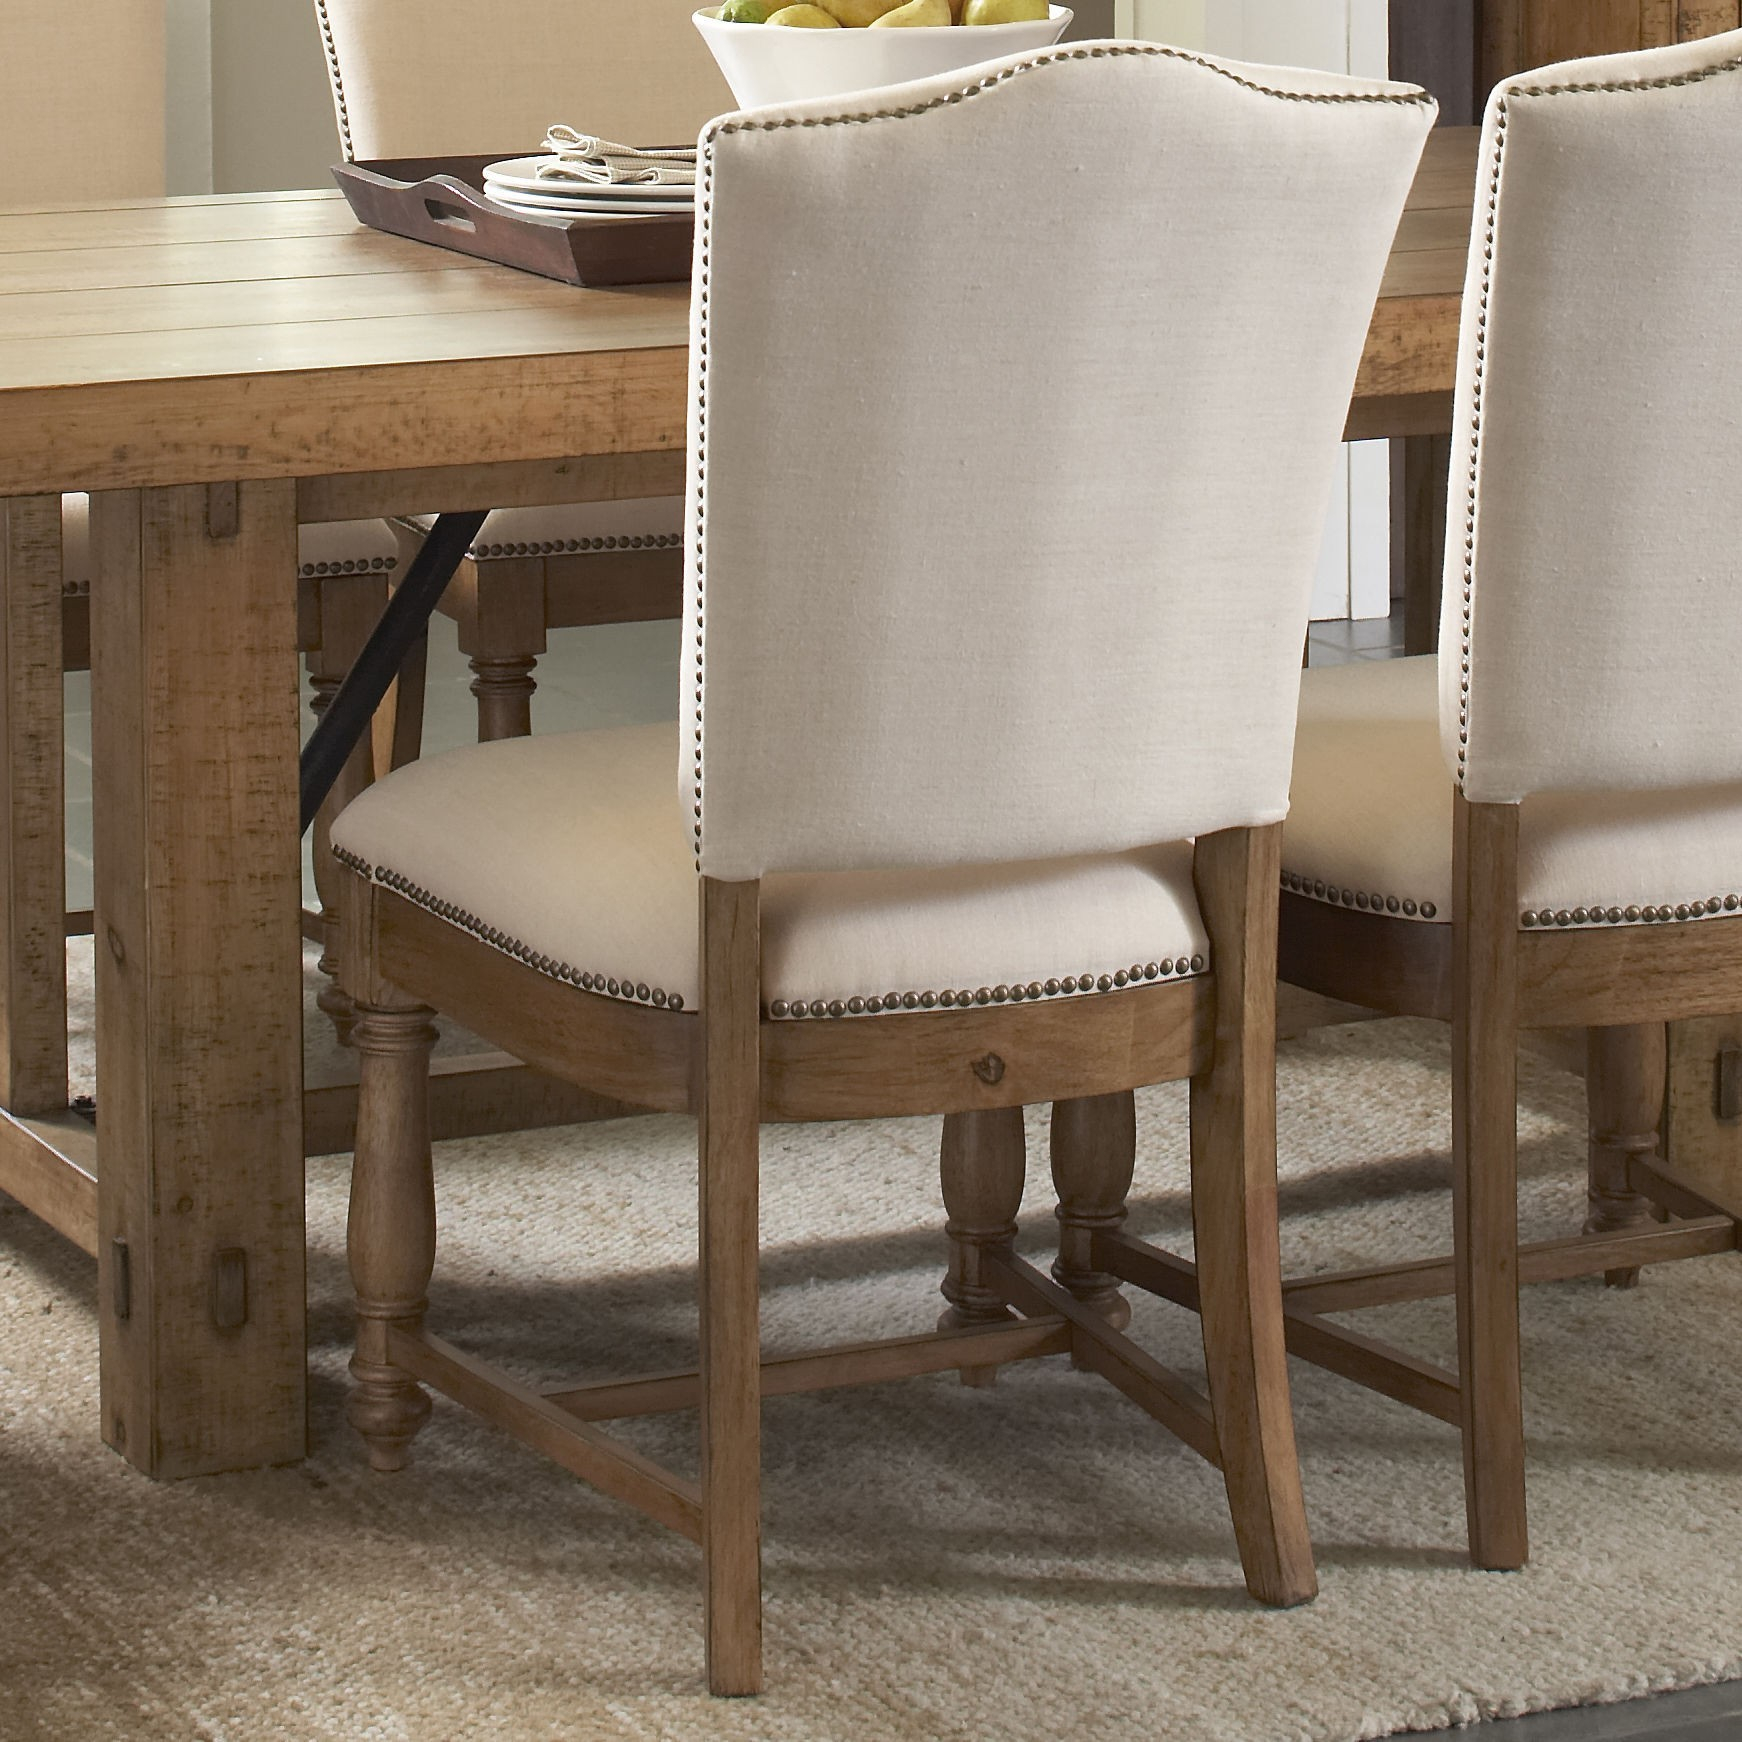 How To Recover Dining Room Chairs Save Beautiful Reupholster Layjao